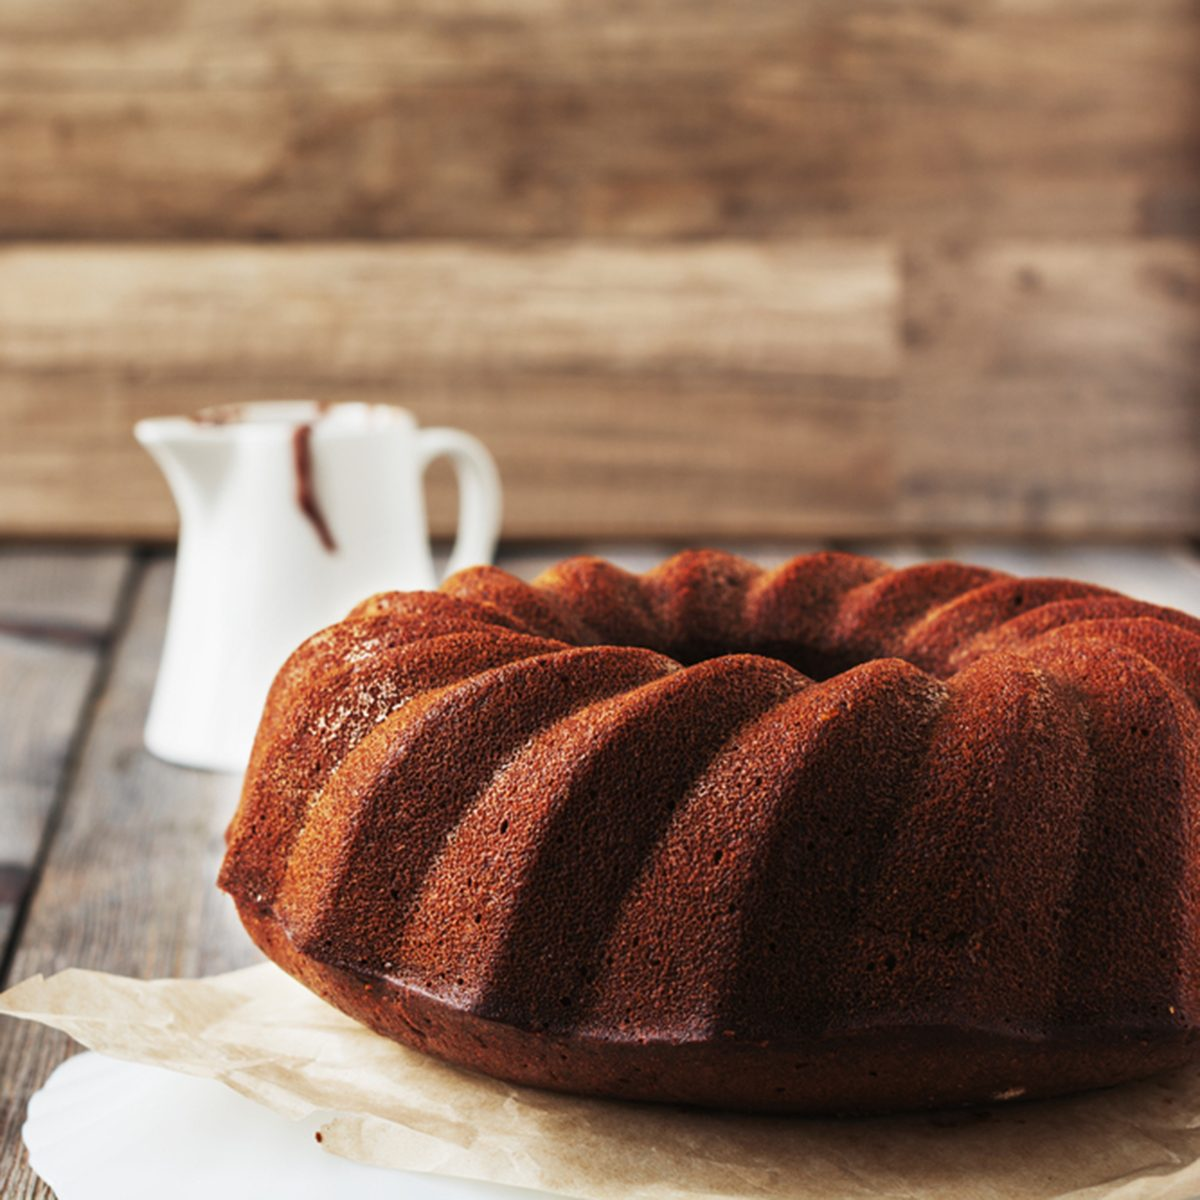 Chocolate Bundt cake with chocolate glaze on an old wooden table background.